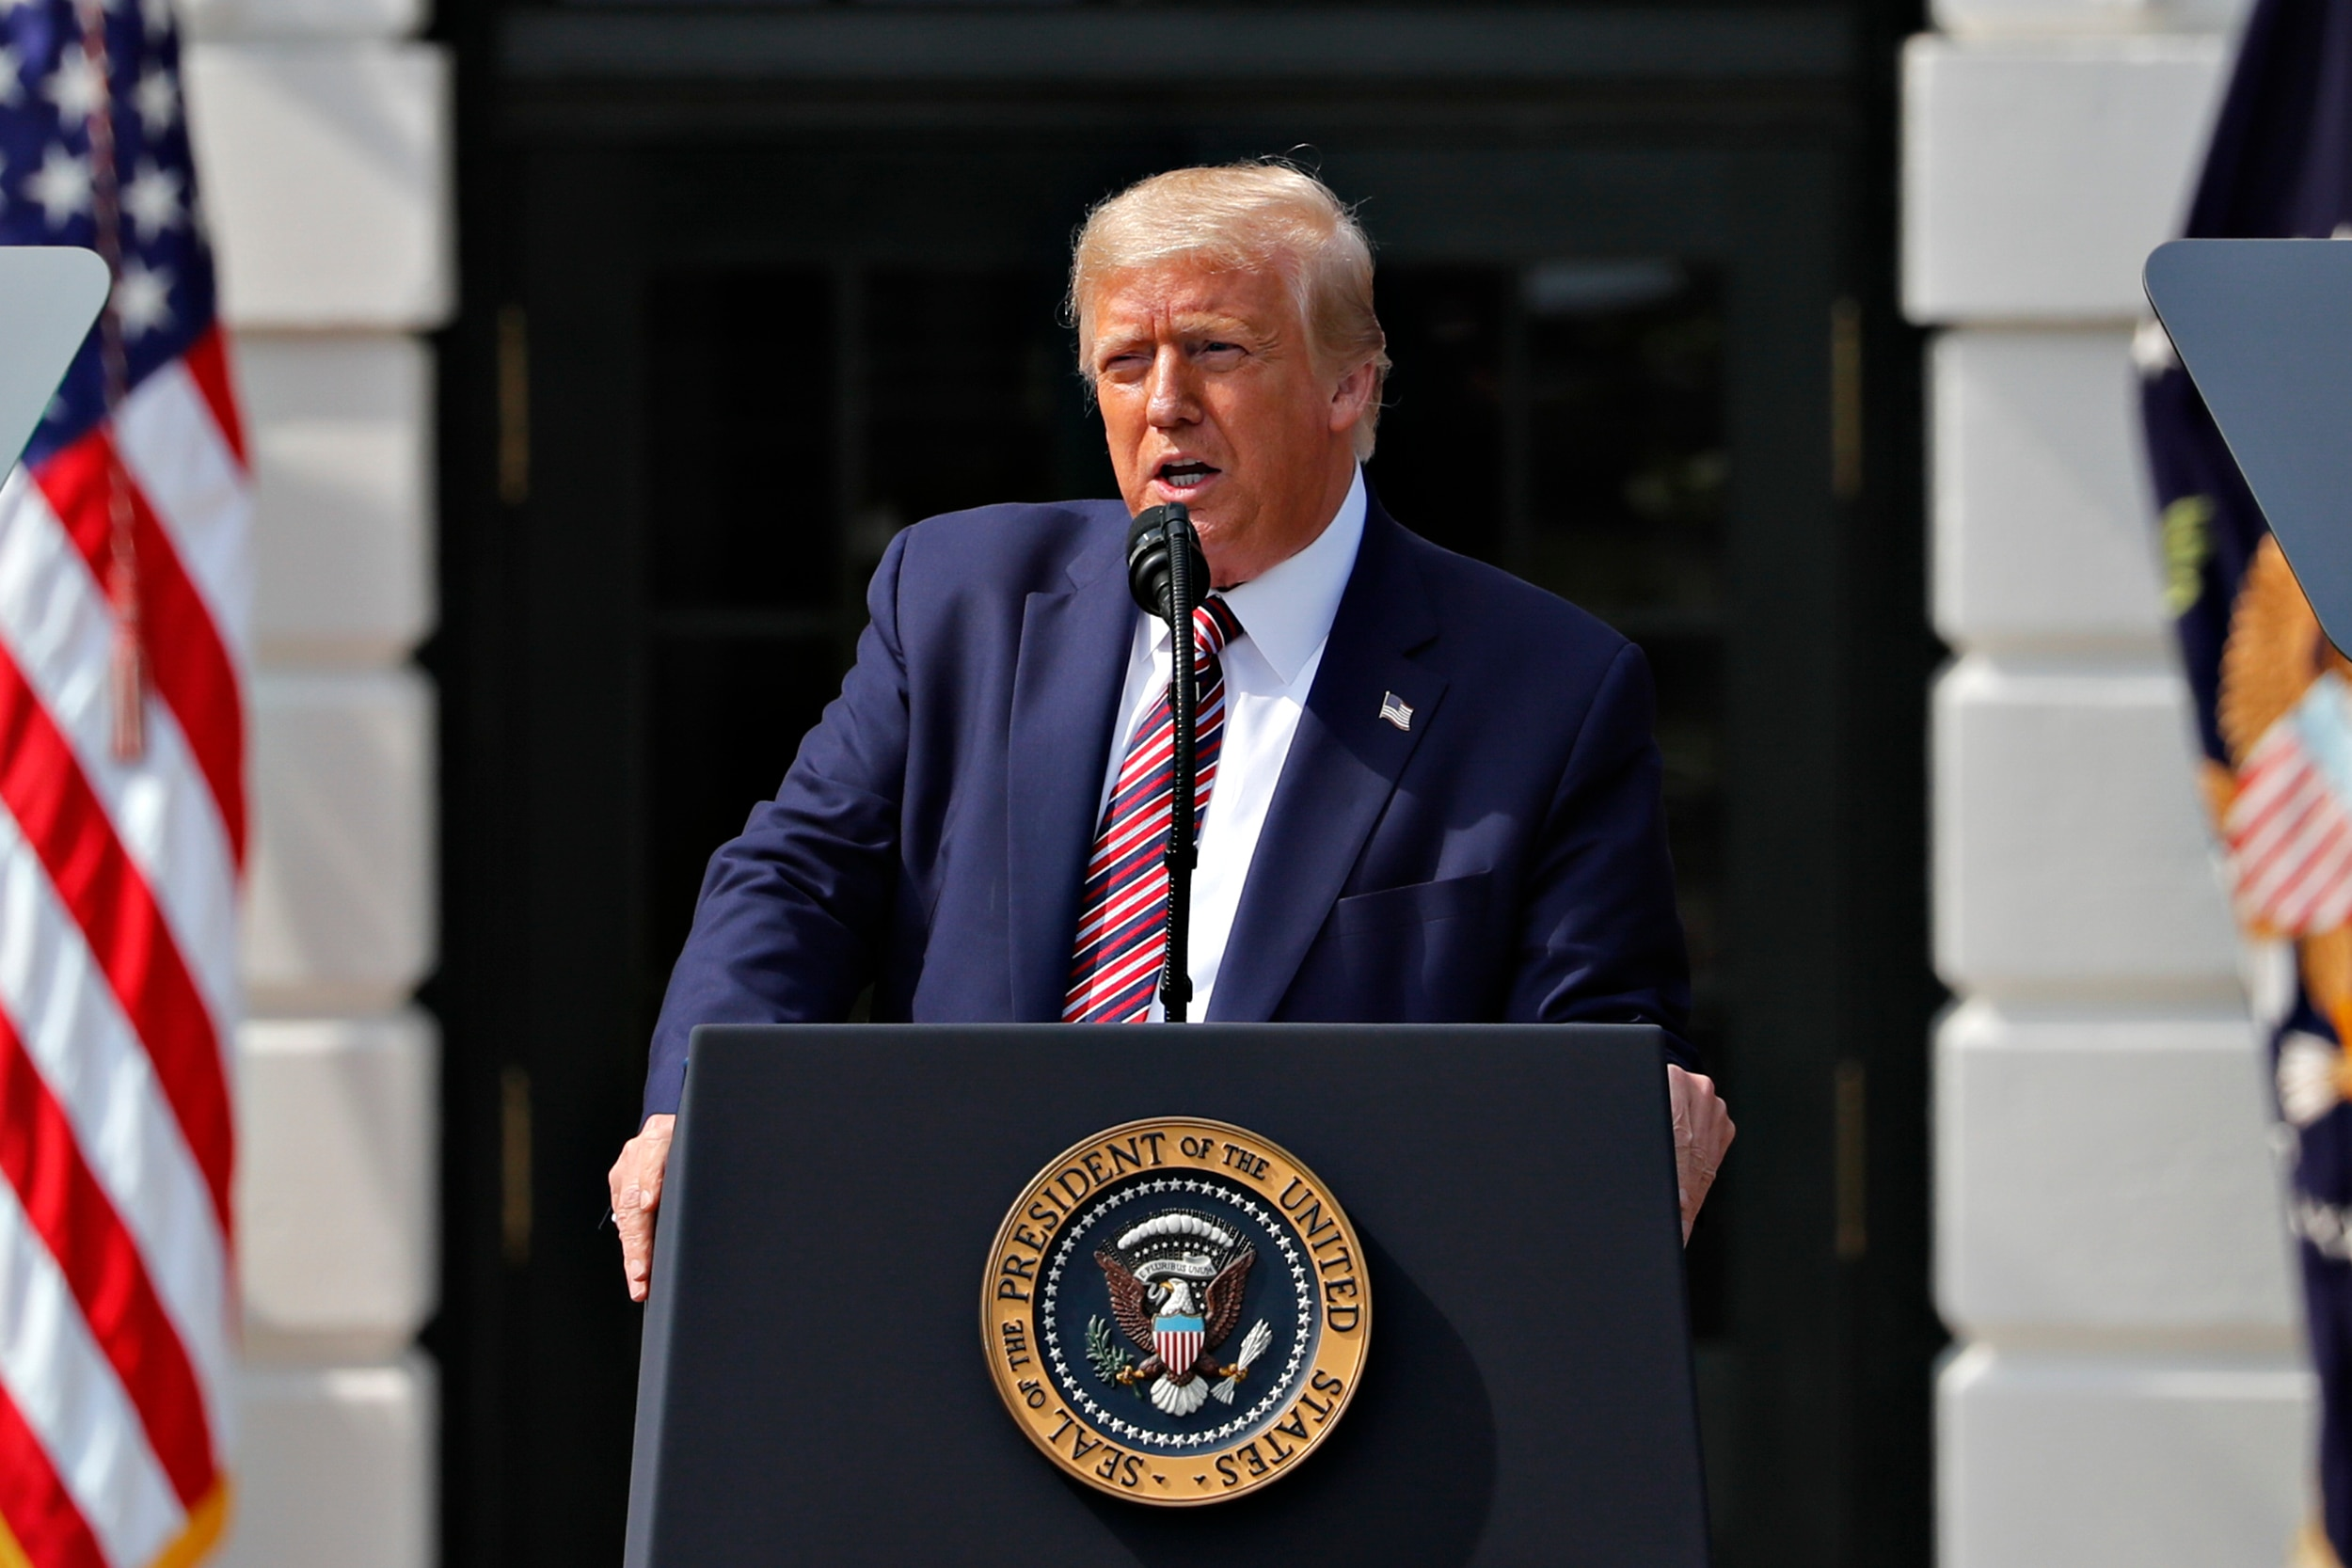 U.S. President Donald Trump speaks during an event on the South Lawn of the White House in Washington, D.C., U.S. on Thursday, July 16, 2020